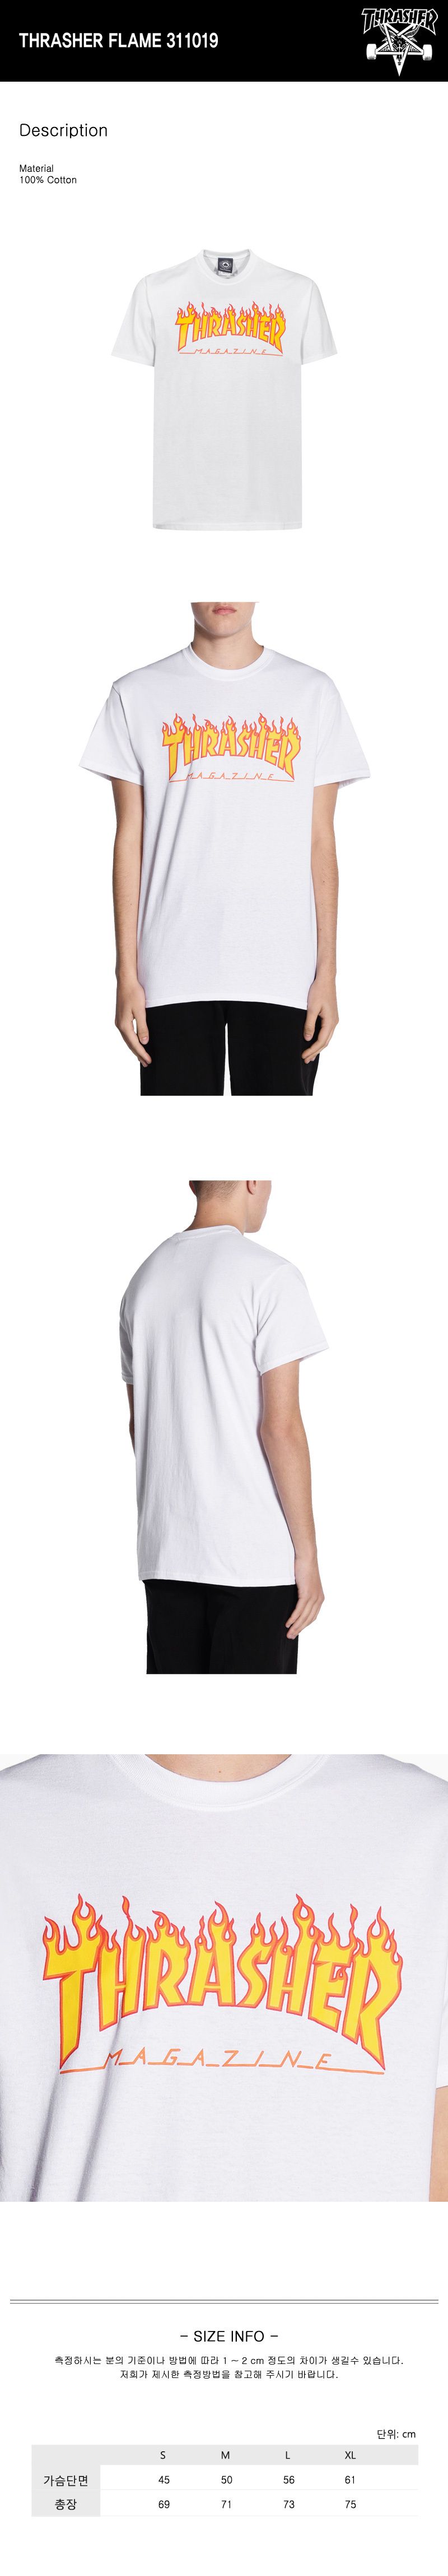 쓰레셔(THRASHER) 트래셔 FLAME 311019 SHORT SLEEVE - WHITE